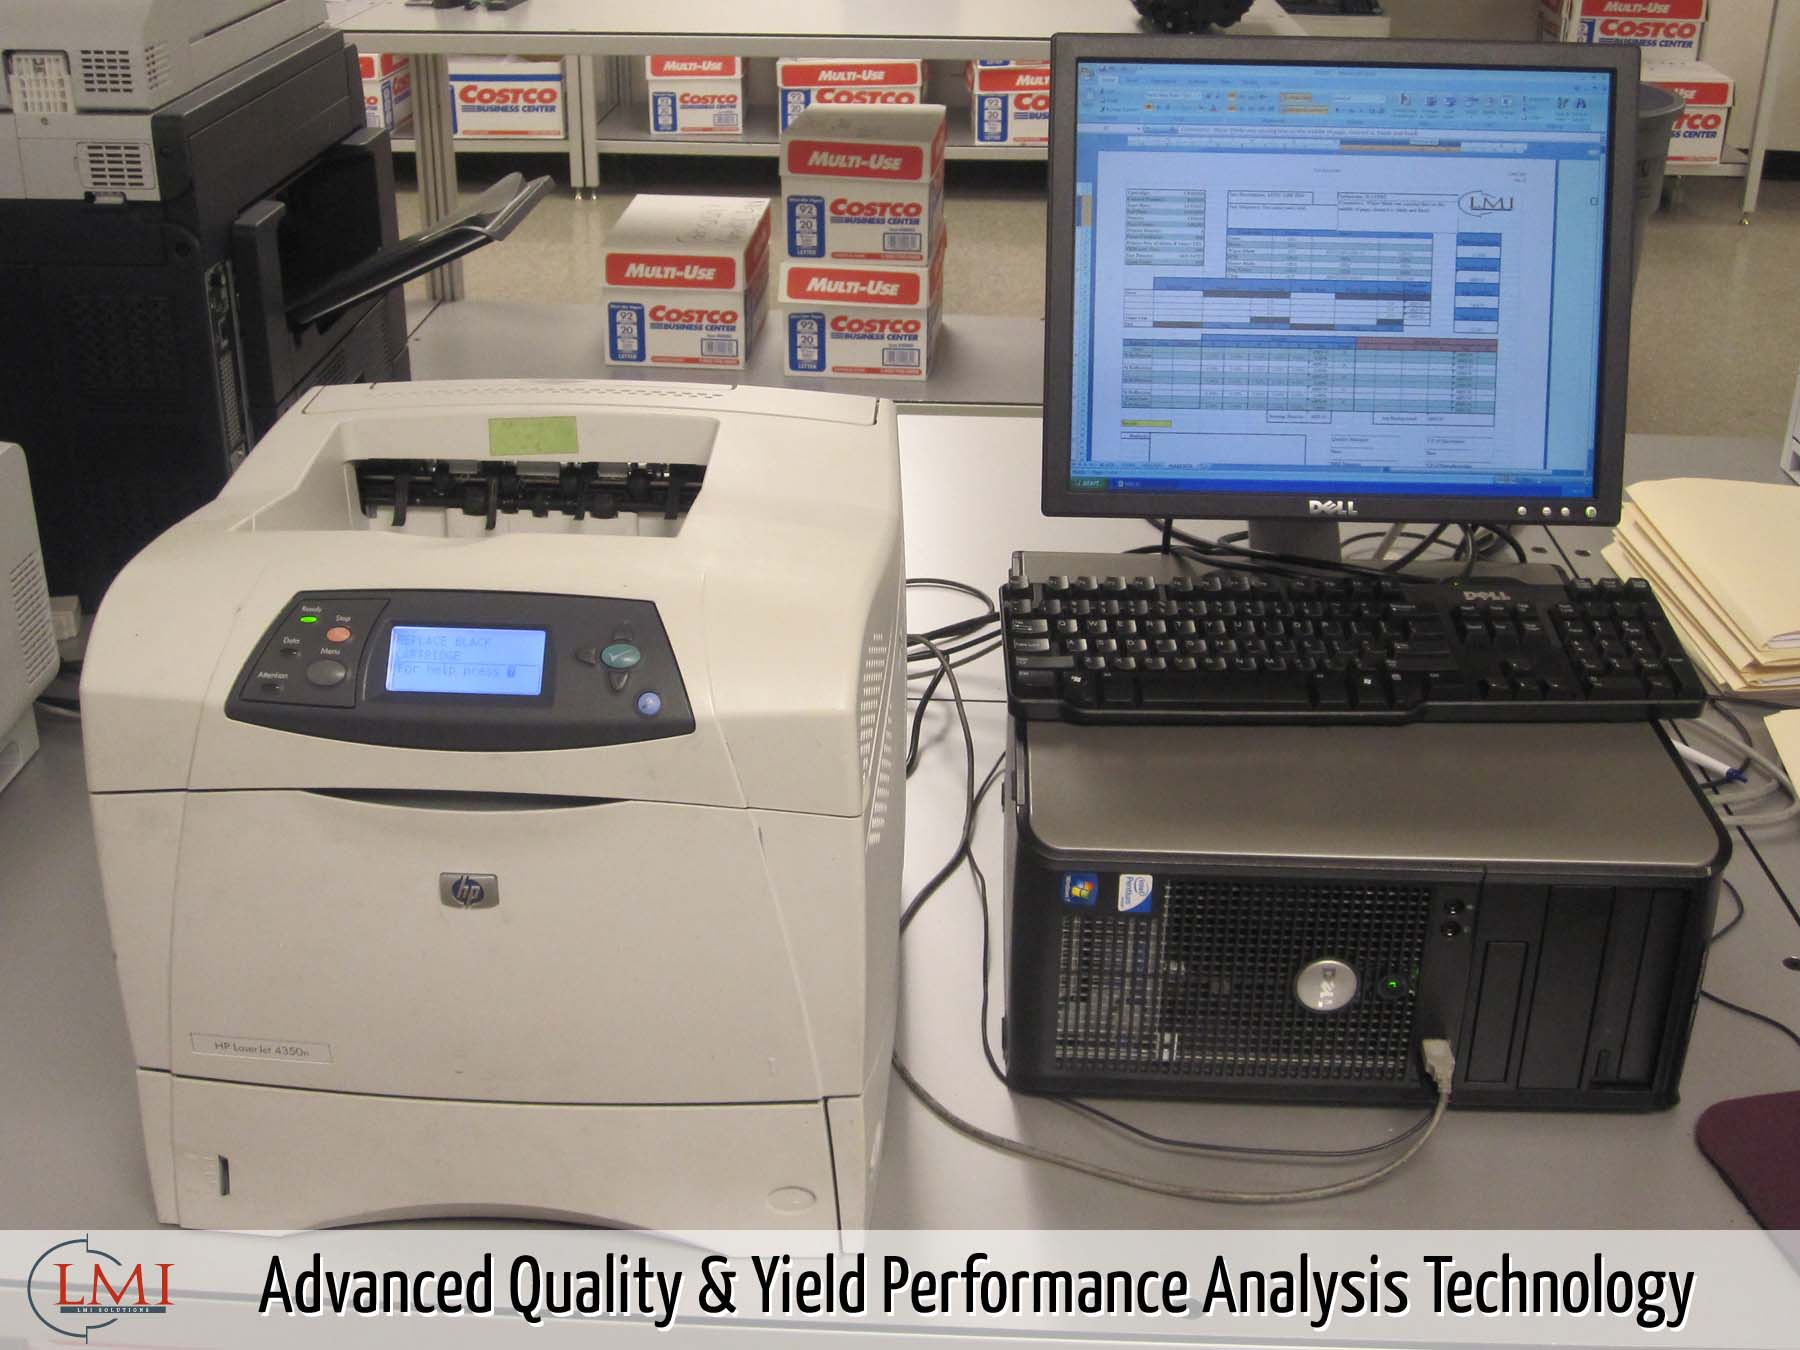 Advanced Quality & Yield Performance Analysis Technology